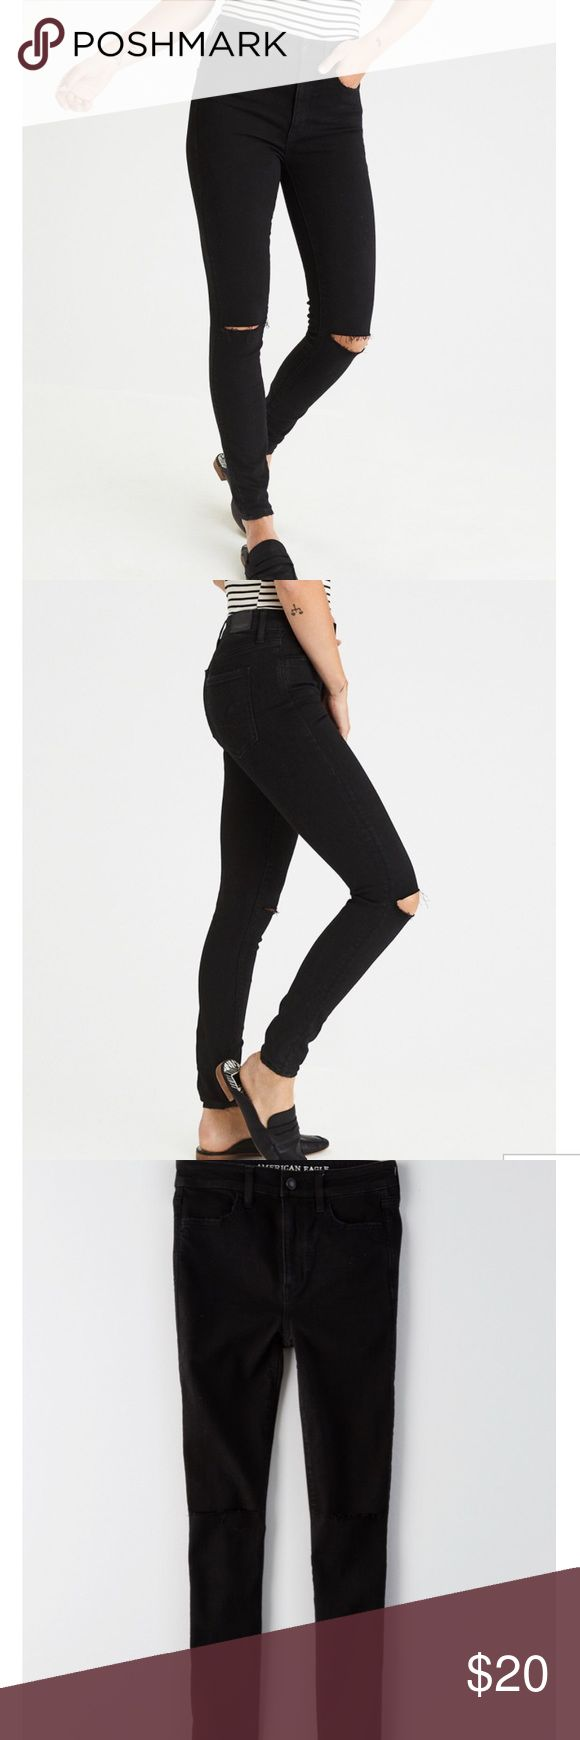 TODAY ONLY American Eagle High Waist Stretch Jean American Eagle High Waisted Super Super Stretch Skinny Jean. Distressed knee and black jean. Worn a handful of times, still in good condition. Retail price over $60 and this style is available online only! Size 14r American Eagle Outfitters Jeans Skinny